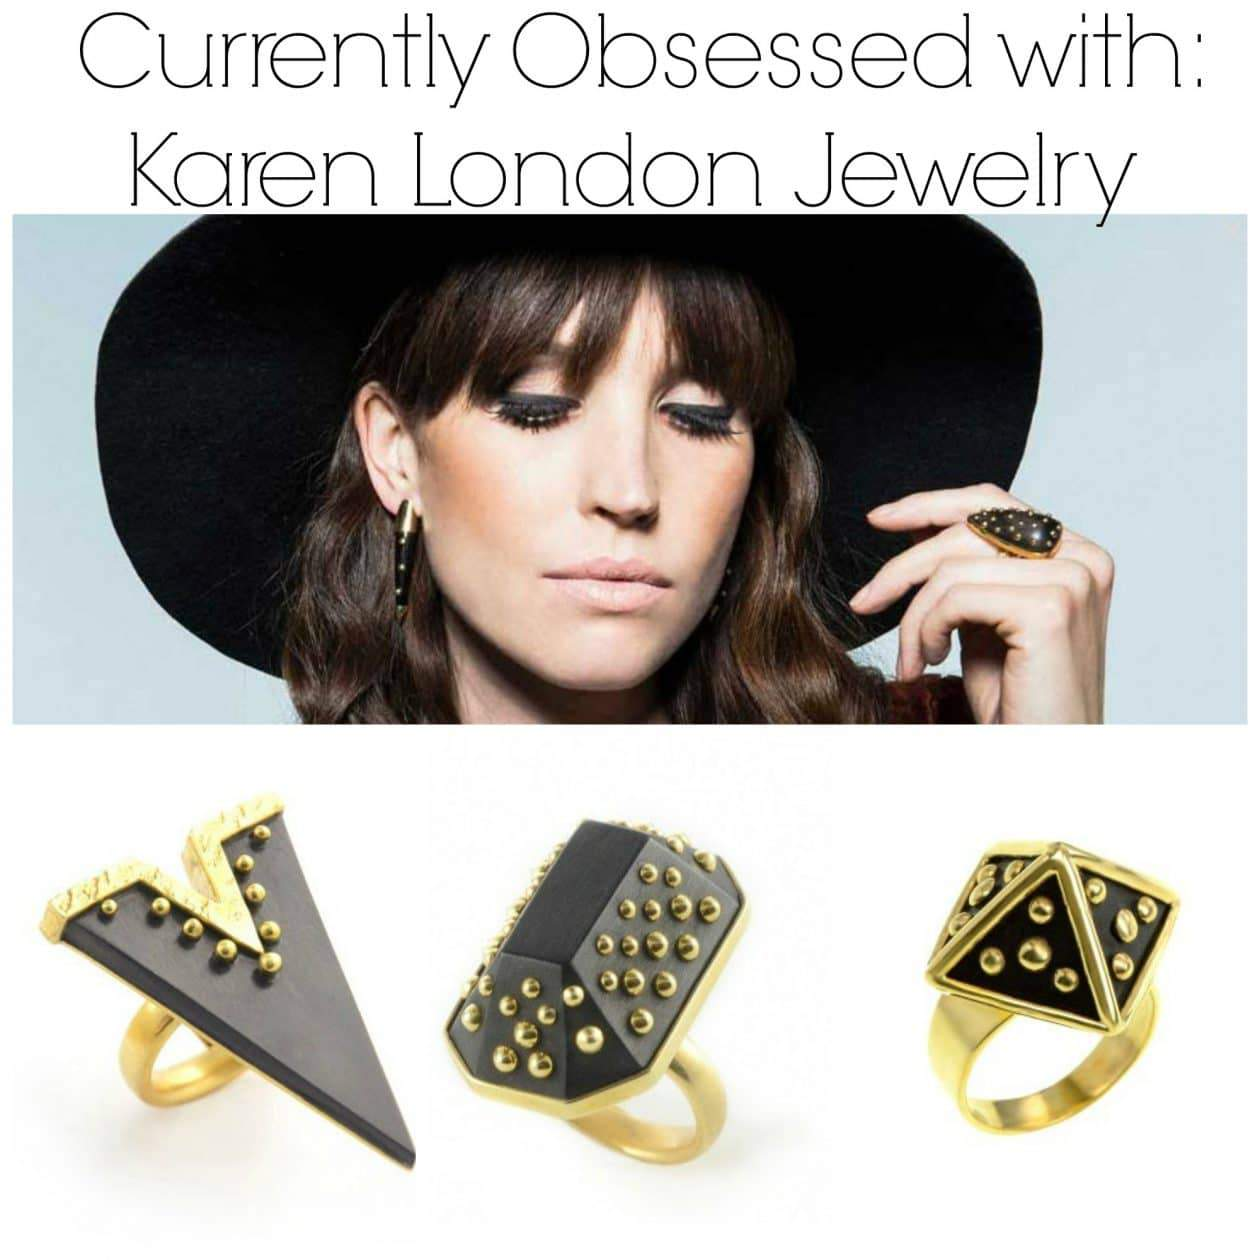 Instantly Obsessed with Los Angeles Jewelry Designer Karen London